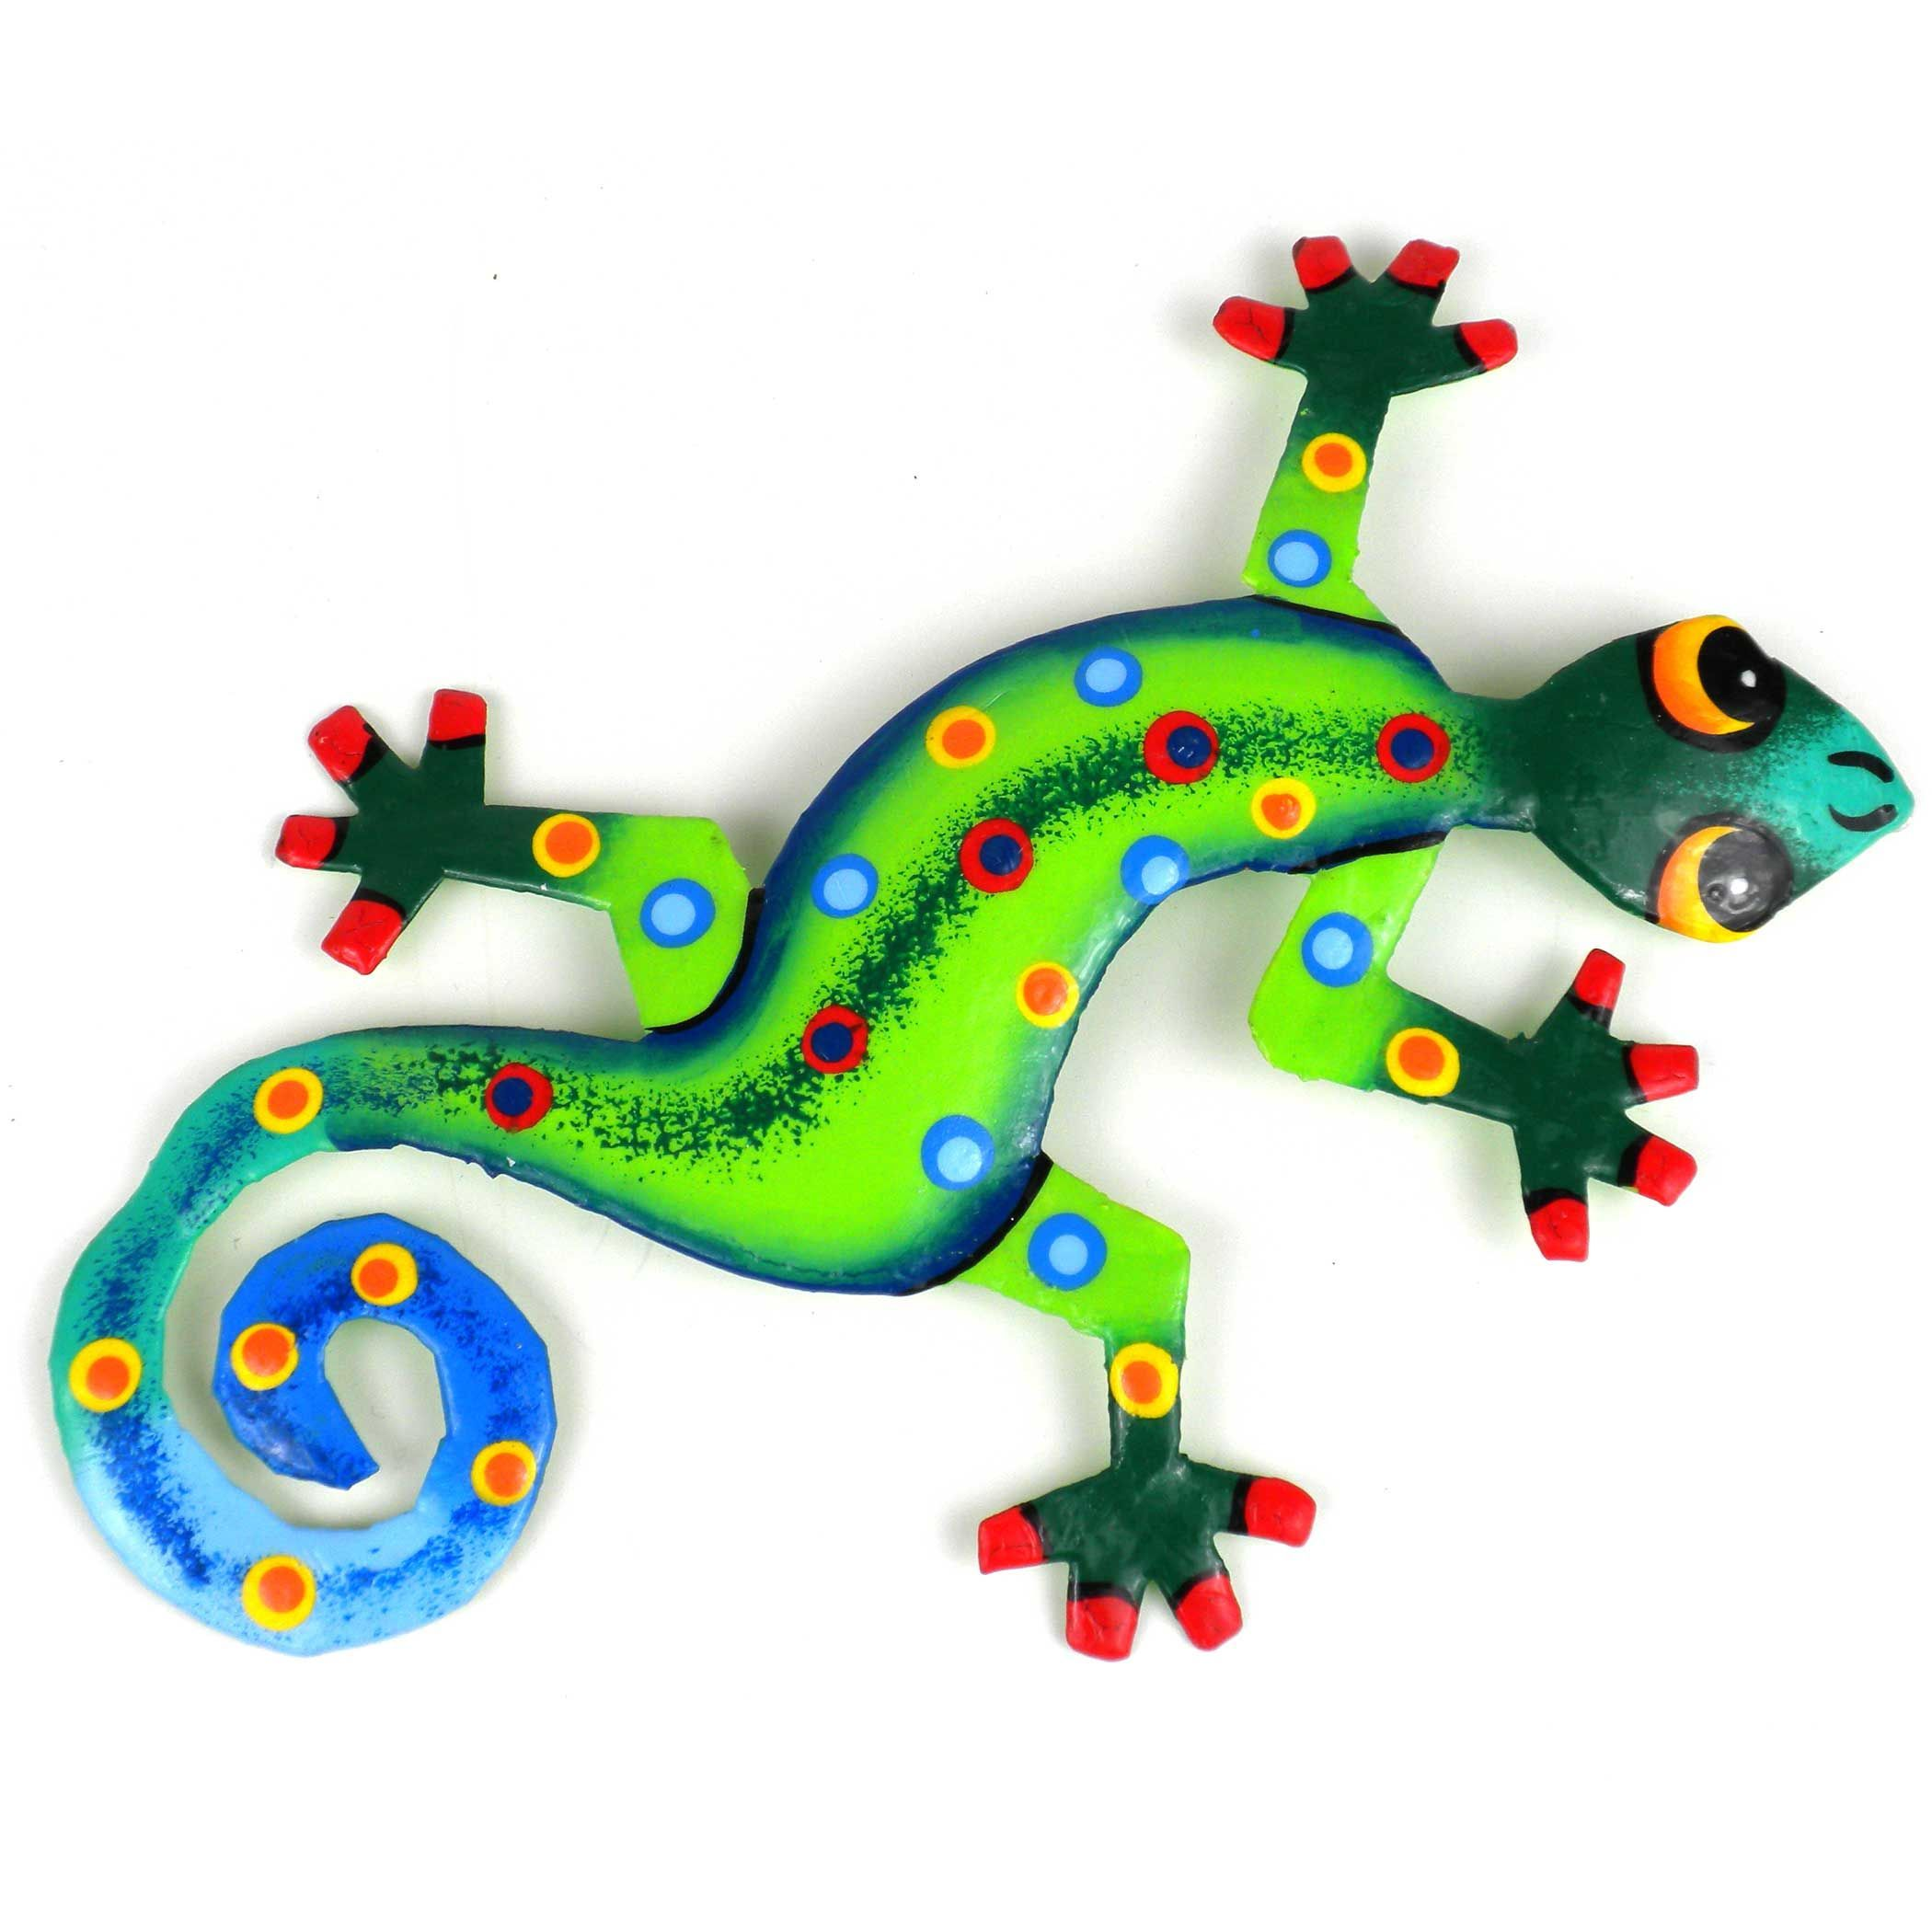 This hand painted decorative metal wall art gecko brings for Gecko wall art